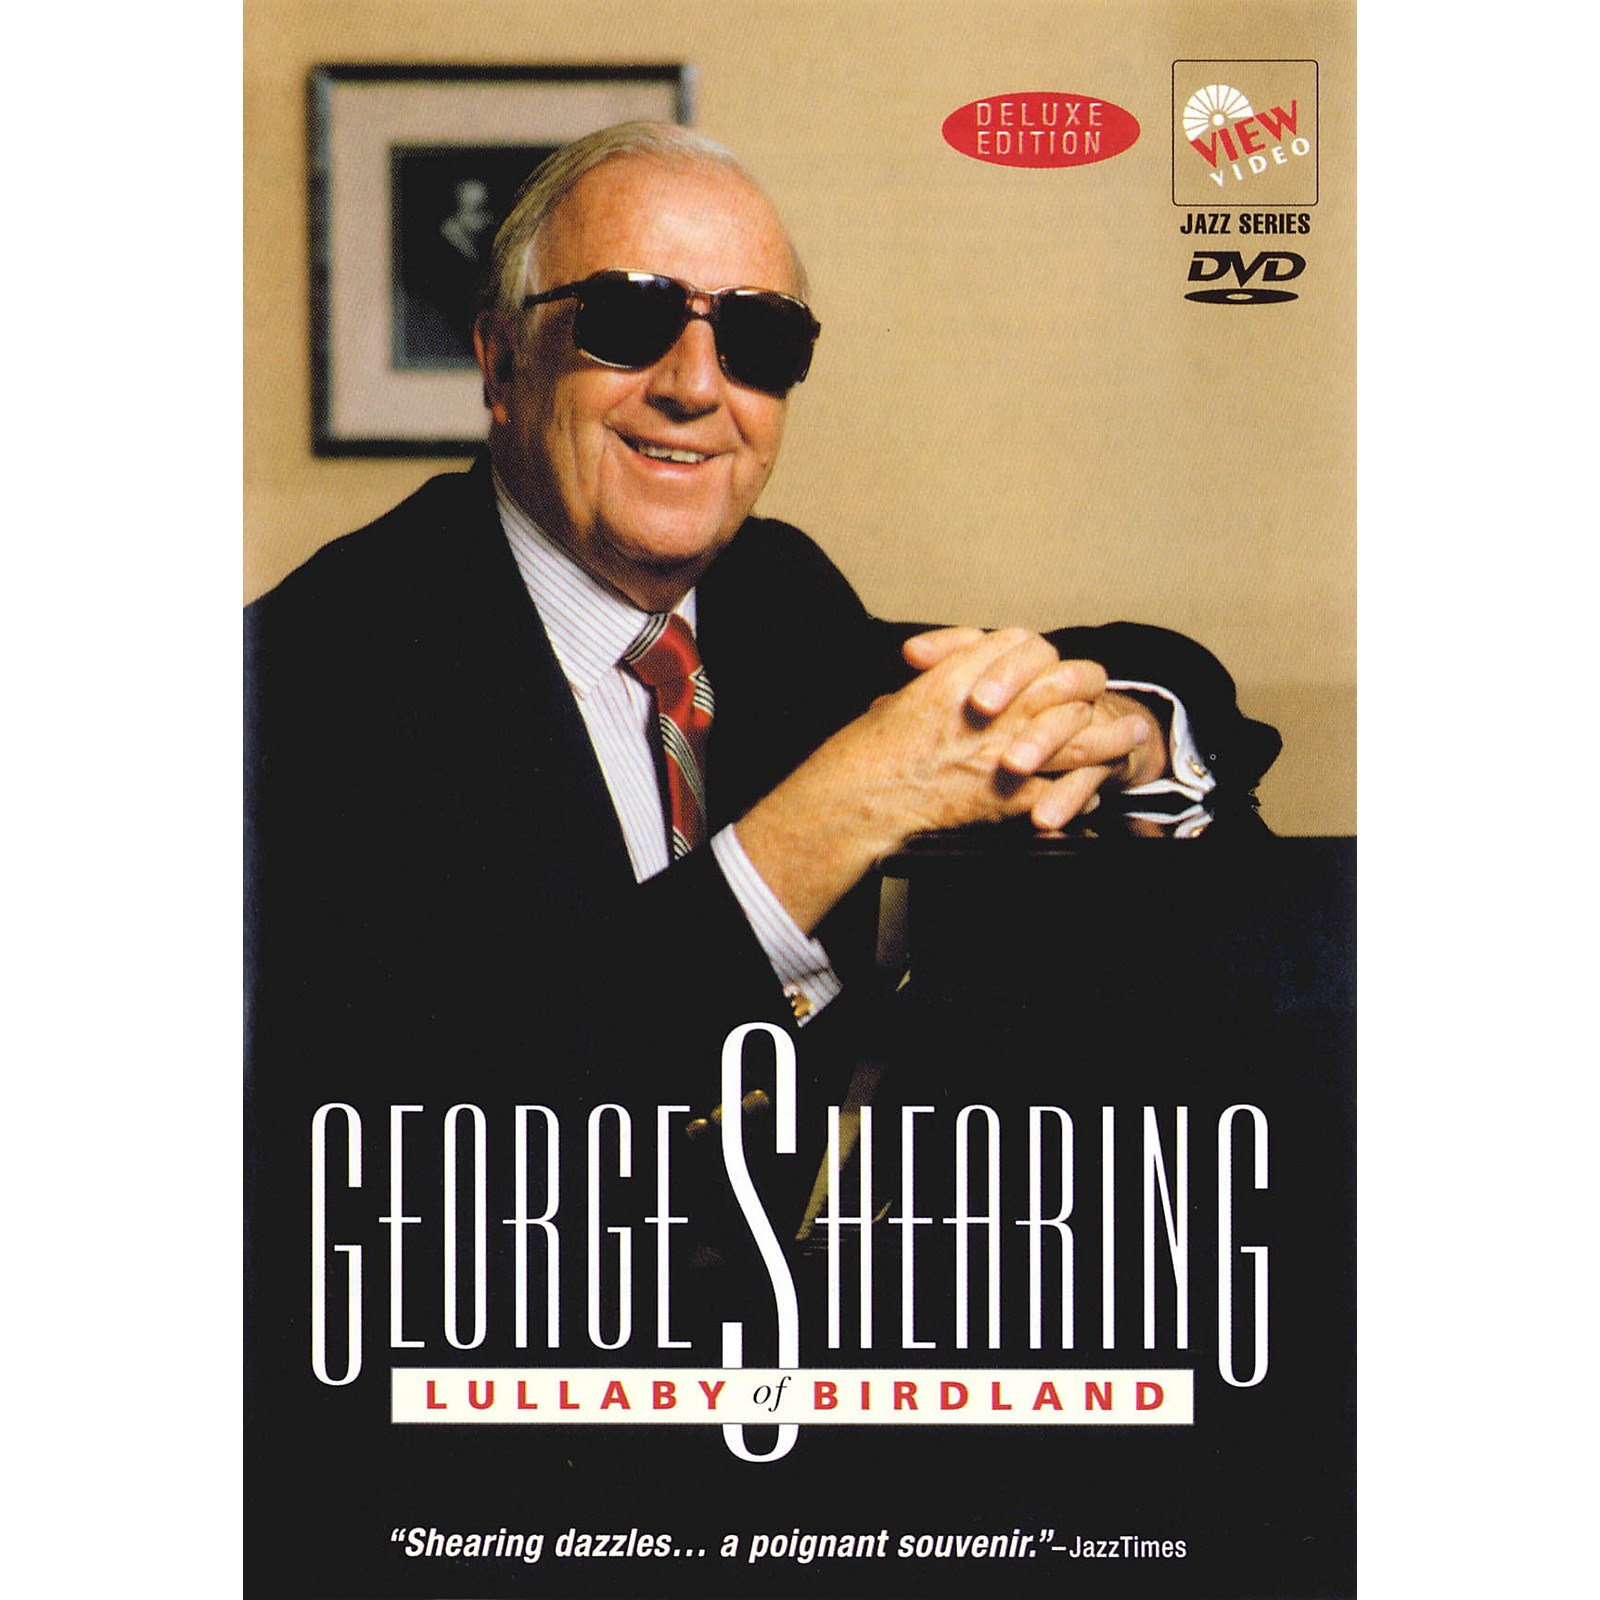 View Video George Shearing - Lullaby of Birdland DVD Series DVD Performed by George Shearing